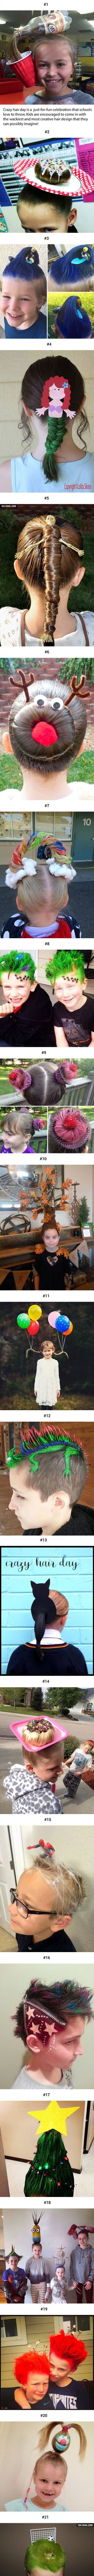 21 Best Crazy Hair Day Dos Ever! is part of Best Crazy Hair Day Dos Ever Kids Wacky Hair Crazy - More memes, funny videos and pics on Fete Halloween, Halloween Costumes, Fairy Costumes, Cosplay Costumes, Wacky Hair, Crazy Hair Days, Cute Hairstyles, Halloween Hairstyles, School Hairstyles